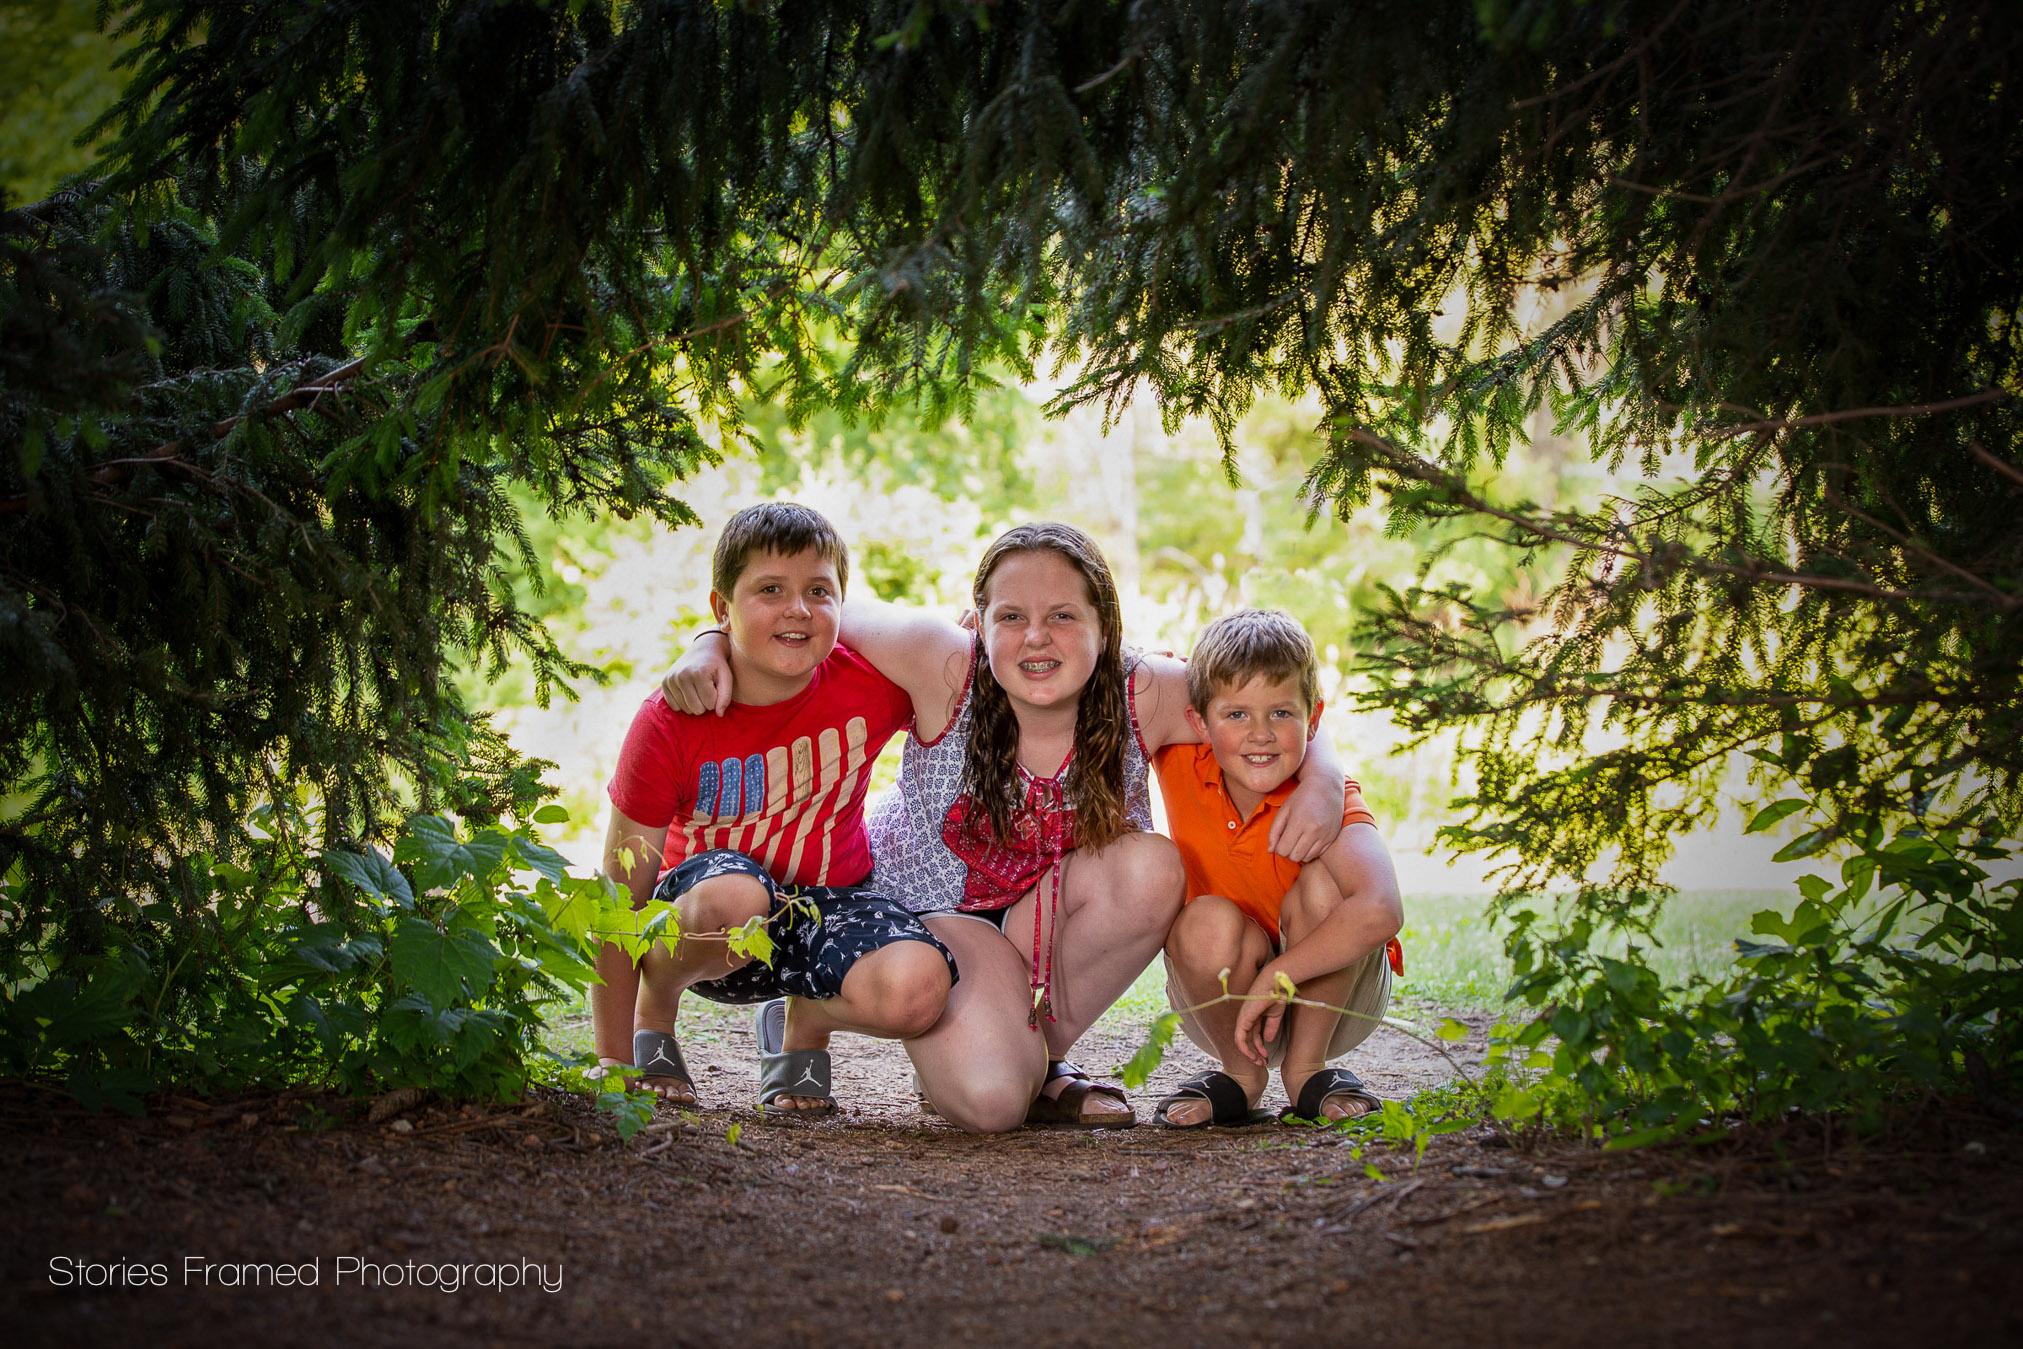 Children are so fun to photograph!